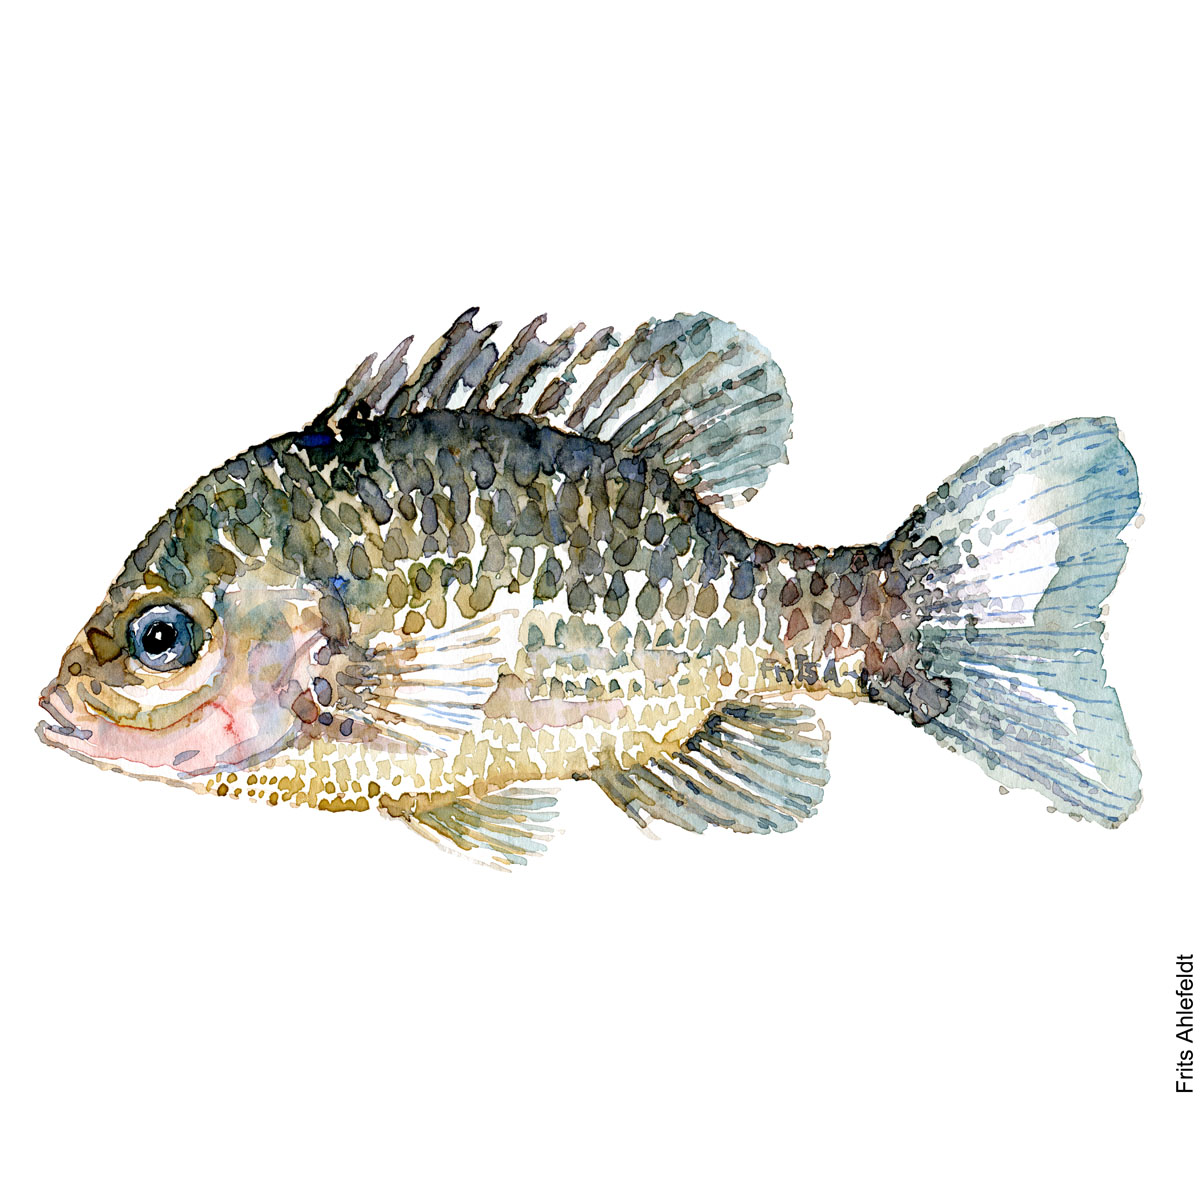 Pumkinseed sunfish. Solaborre. Watercolour, Freshwater fish illustration by Frits Ahlefeldt